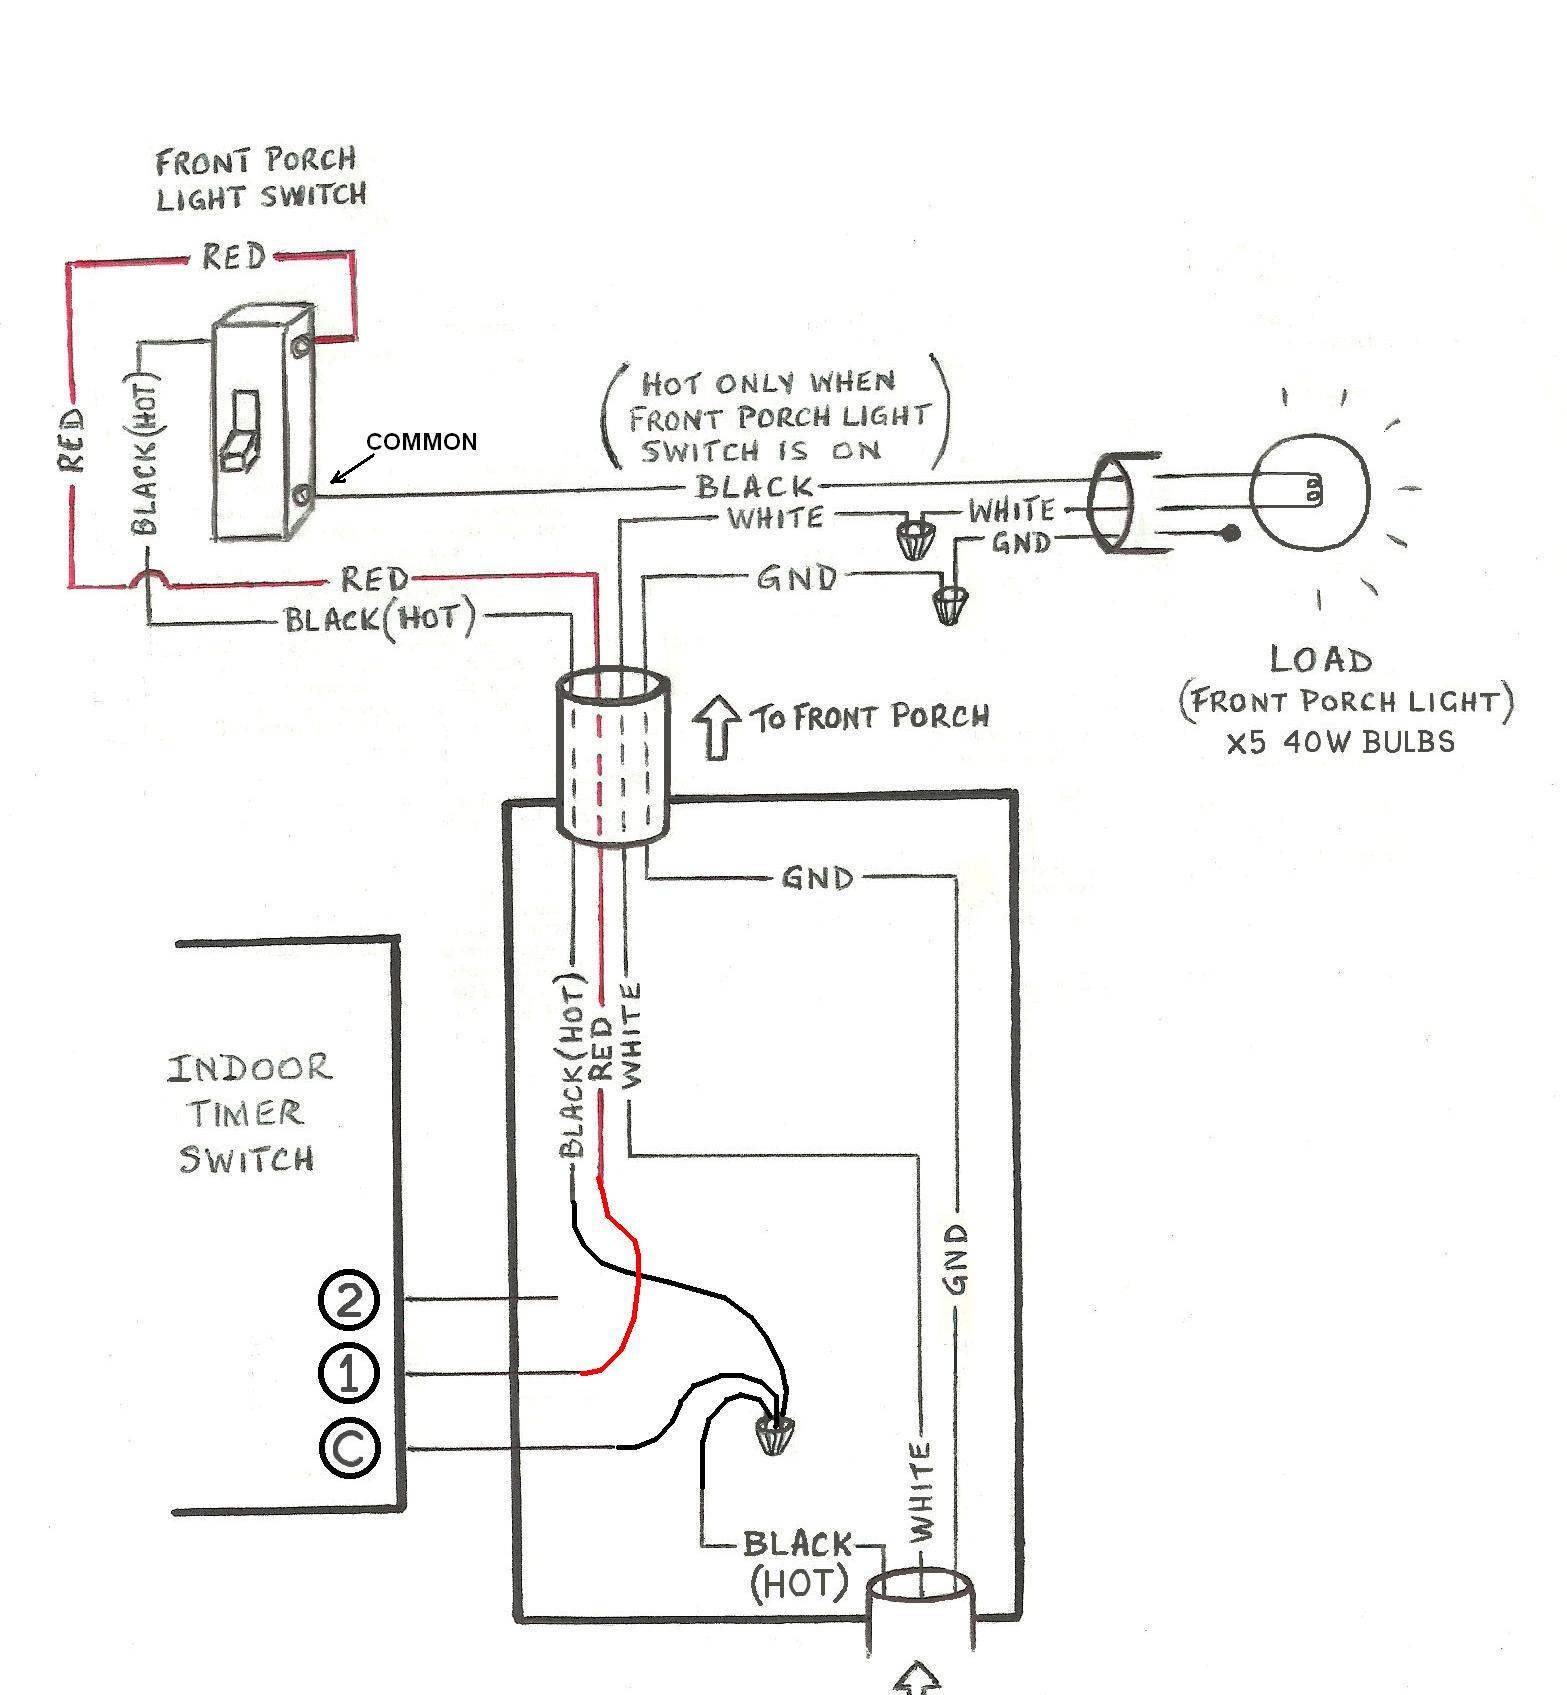 hight resolution of photocell and timer switch wiring diagram wiring diagram third level 24v 3 wire photocell wiring diagram photocell and timer switch wiring diagram